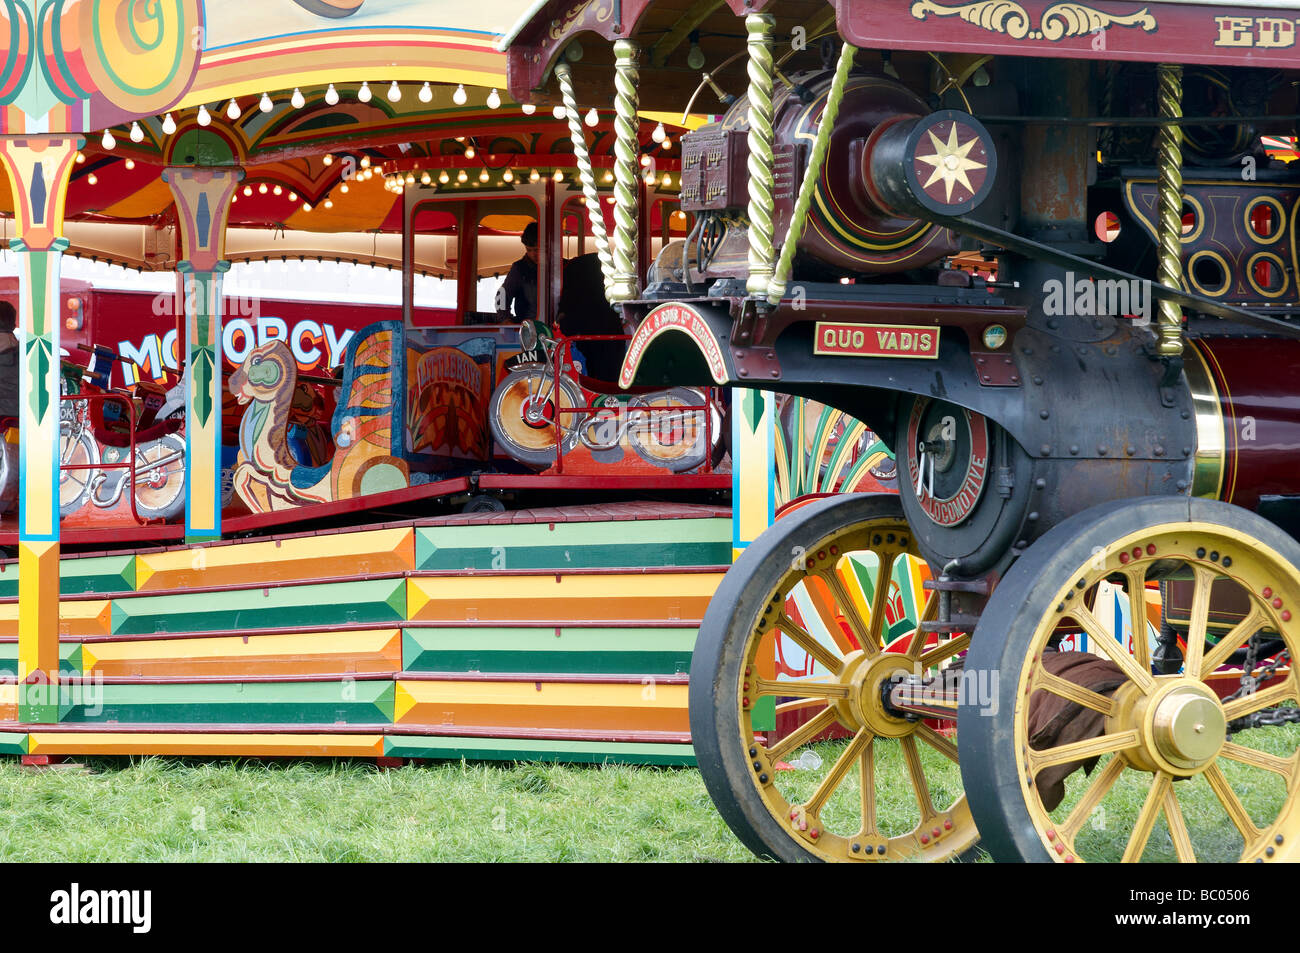 Traditional fairground ride and Burrel Showmans engine. - Stock Image